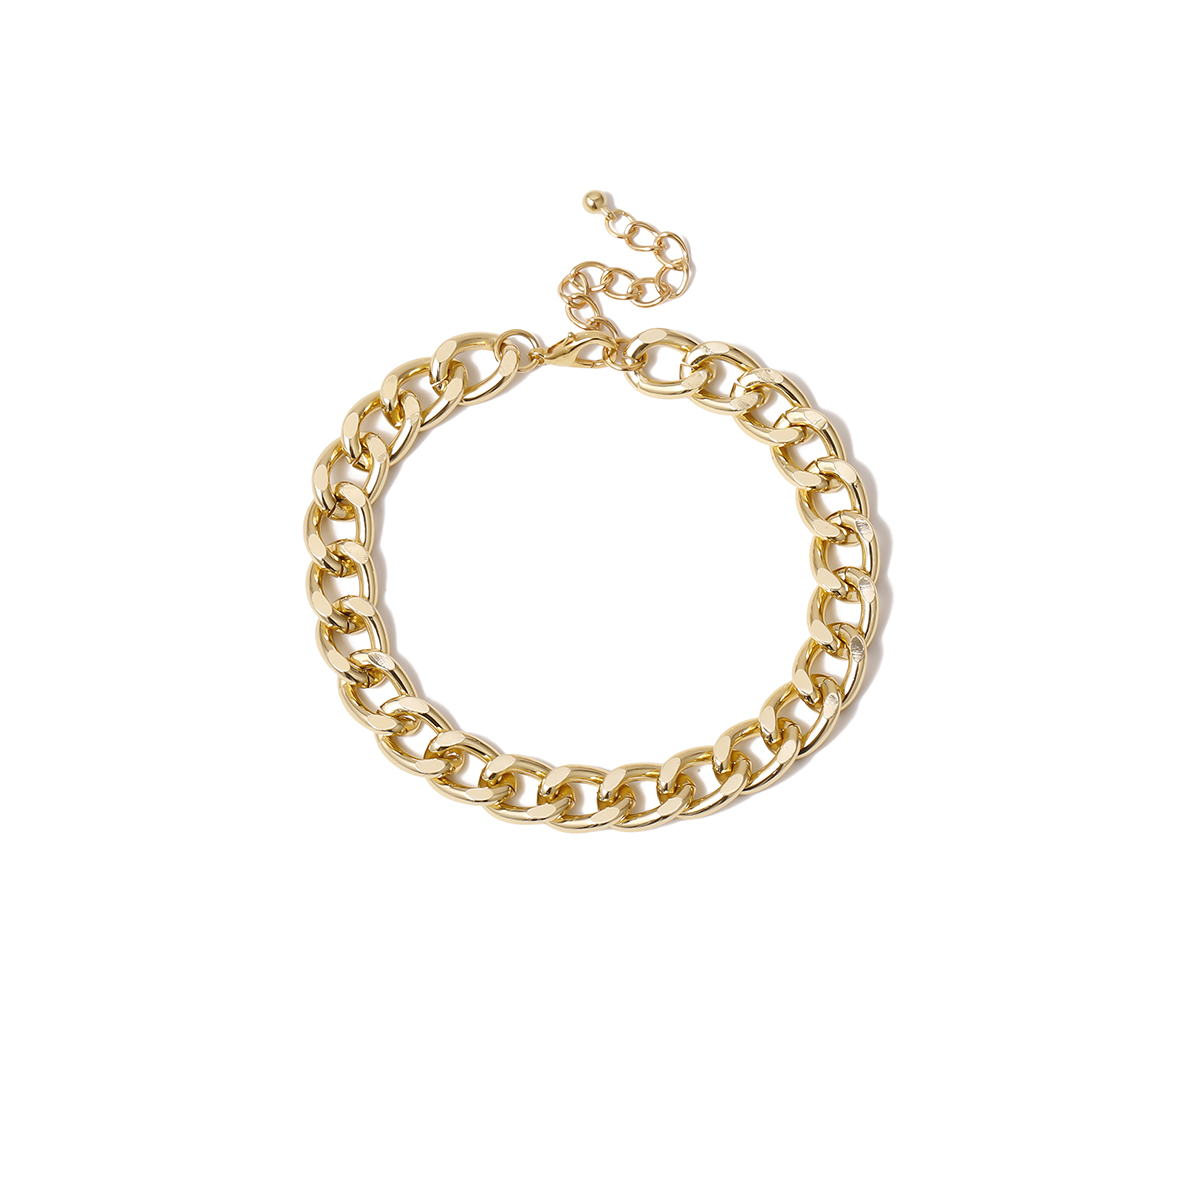 Punk Gold Thick Anklet Cuban Link Chain Anklets For Women Sexy Chunky Ankle Bracelet Leg Chain Beach Foot Jewelry